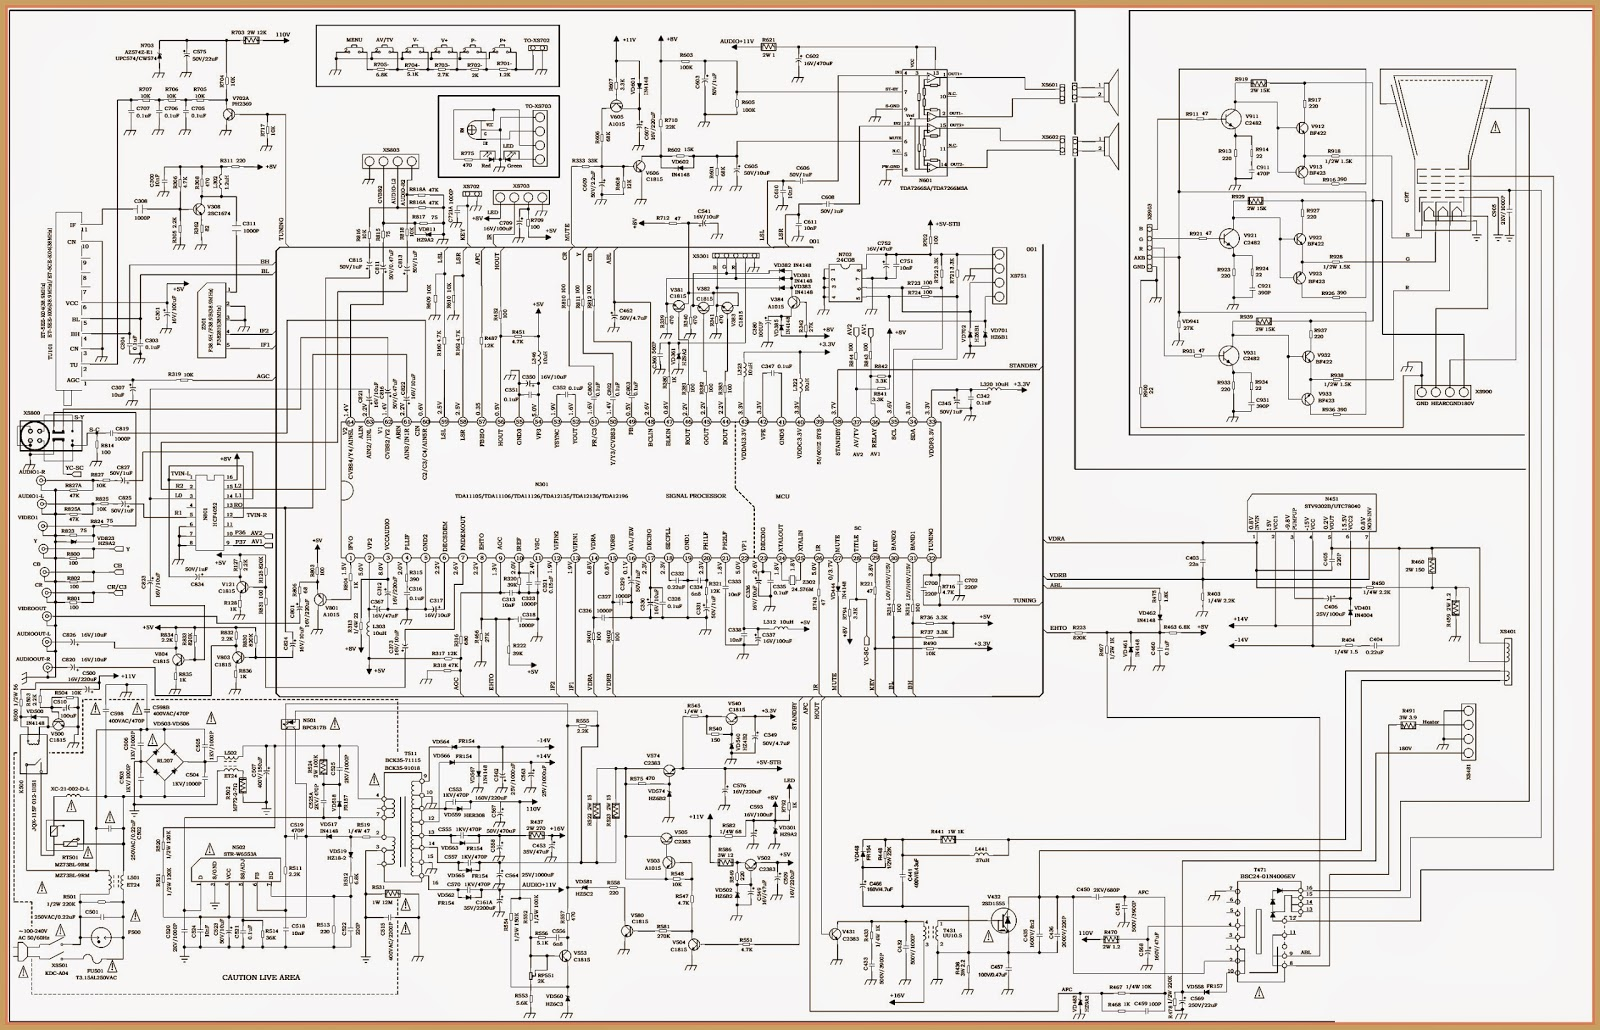 medium resolution of color tv kit circuit diagram full tda 11106 stv9302 based kitchen circuit diagram circuit diagram kit